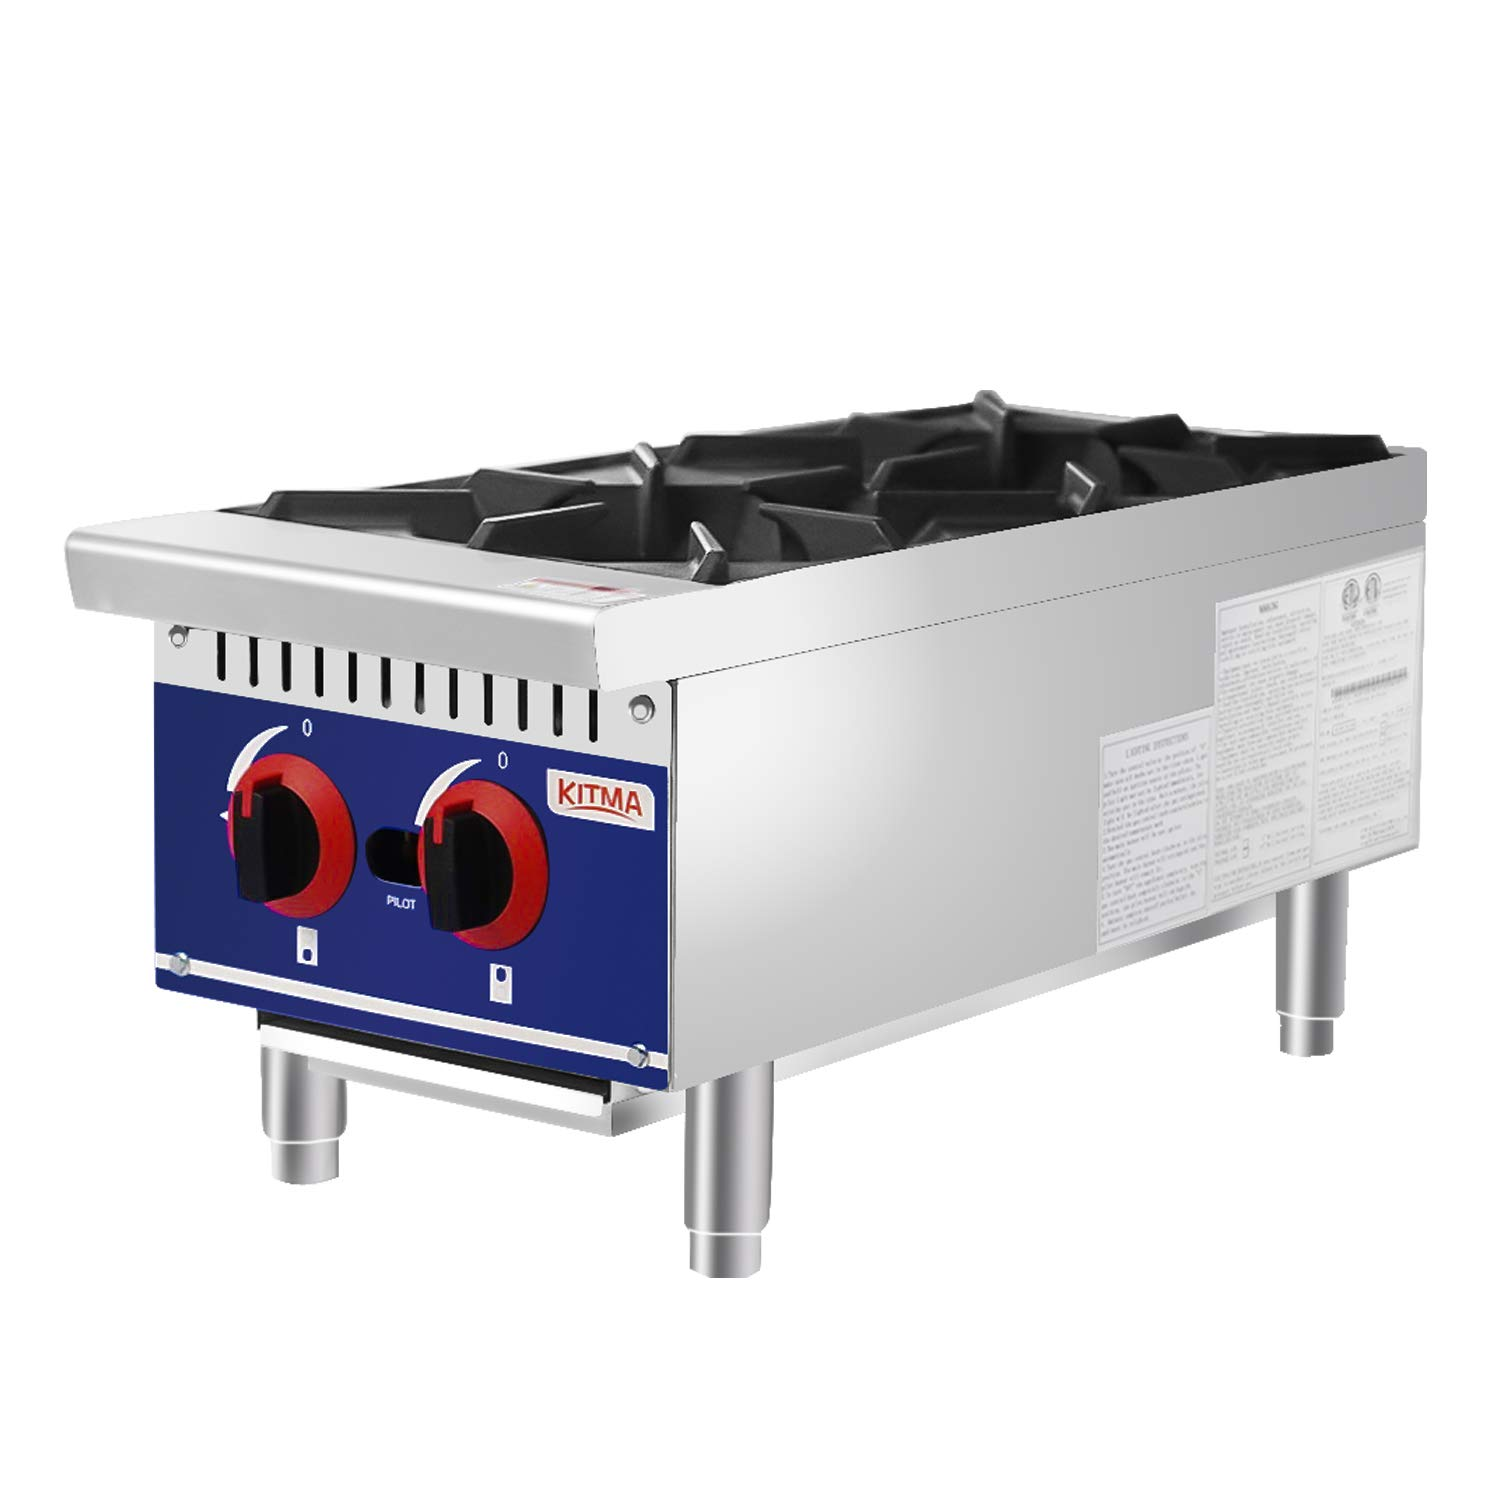 Commercial Countertop Hot Plate - KITMA 12 Inches 2 Burner Natural Gas Range - Restaurant Equipment for Soups, Sauces